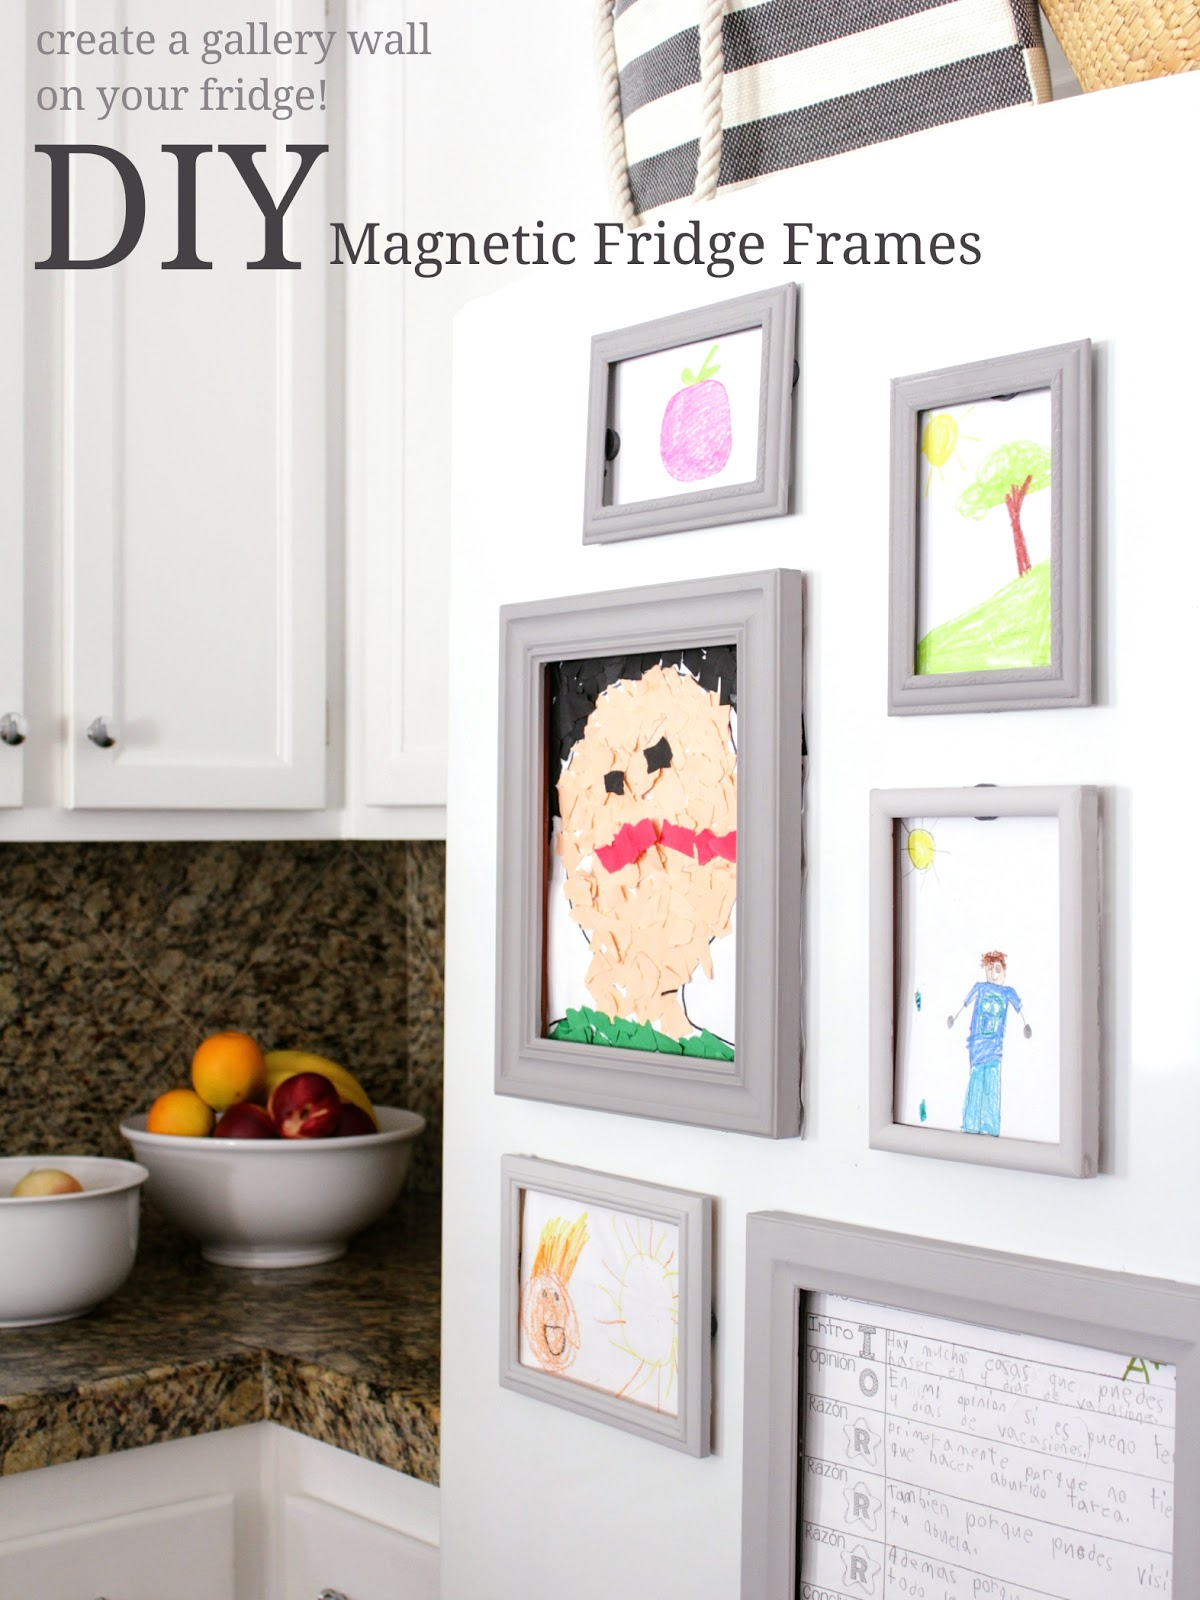 Oscar bravo home diy magnetic fridge frames if you want some more tips on what to do with all that stuff kids come home with then you should check out my blog post on organization jeuxipadfo Gallery